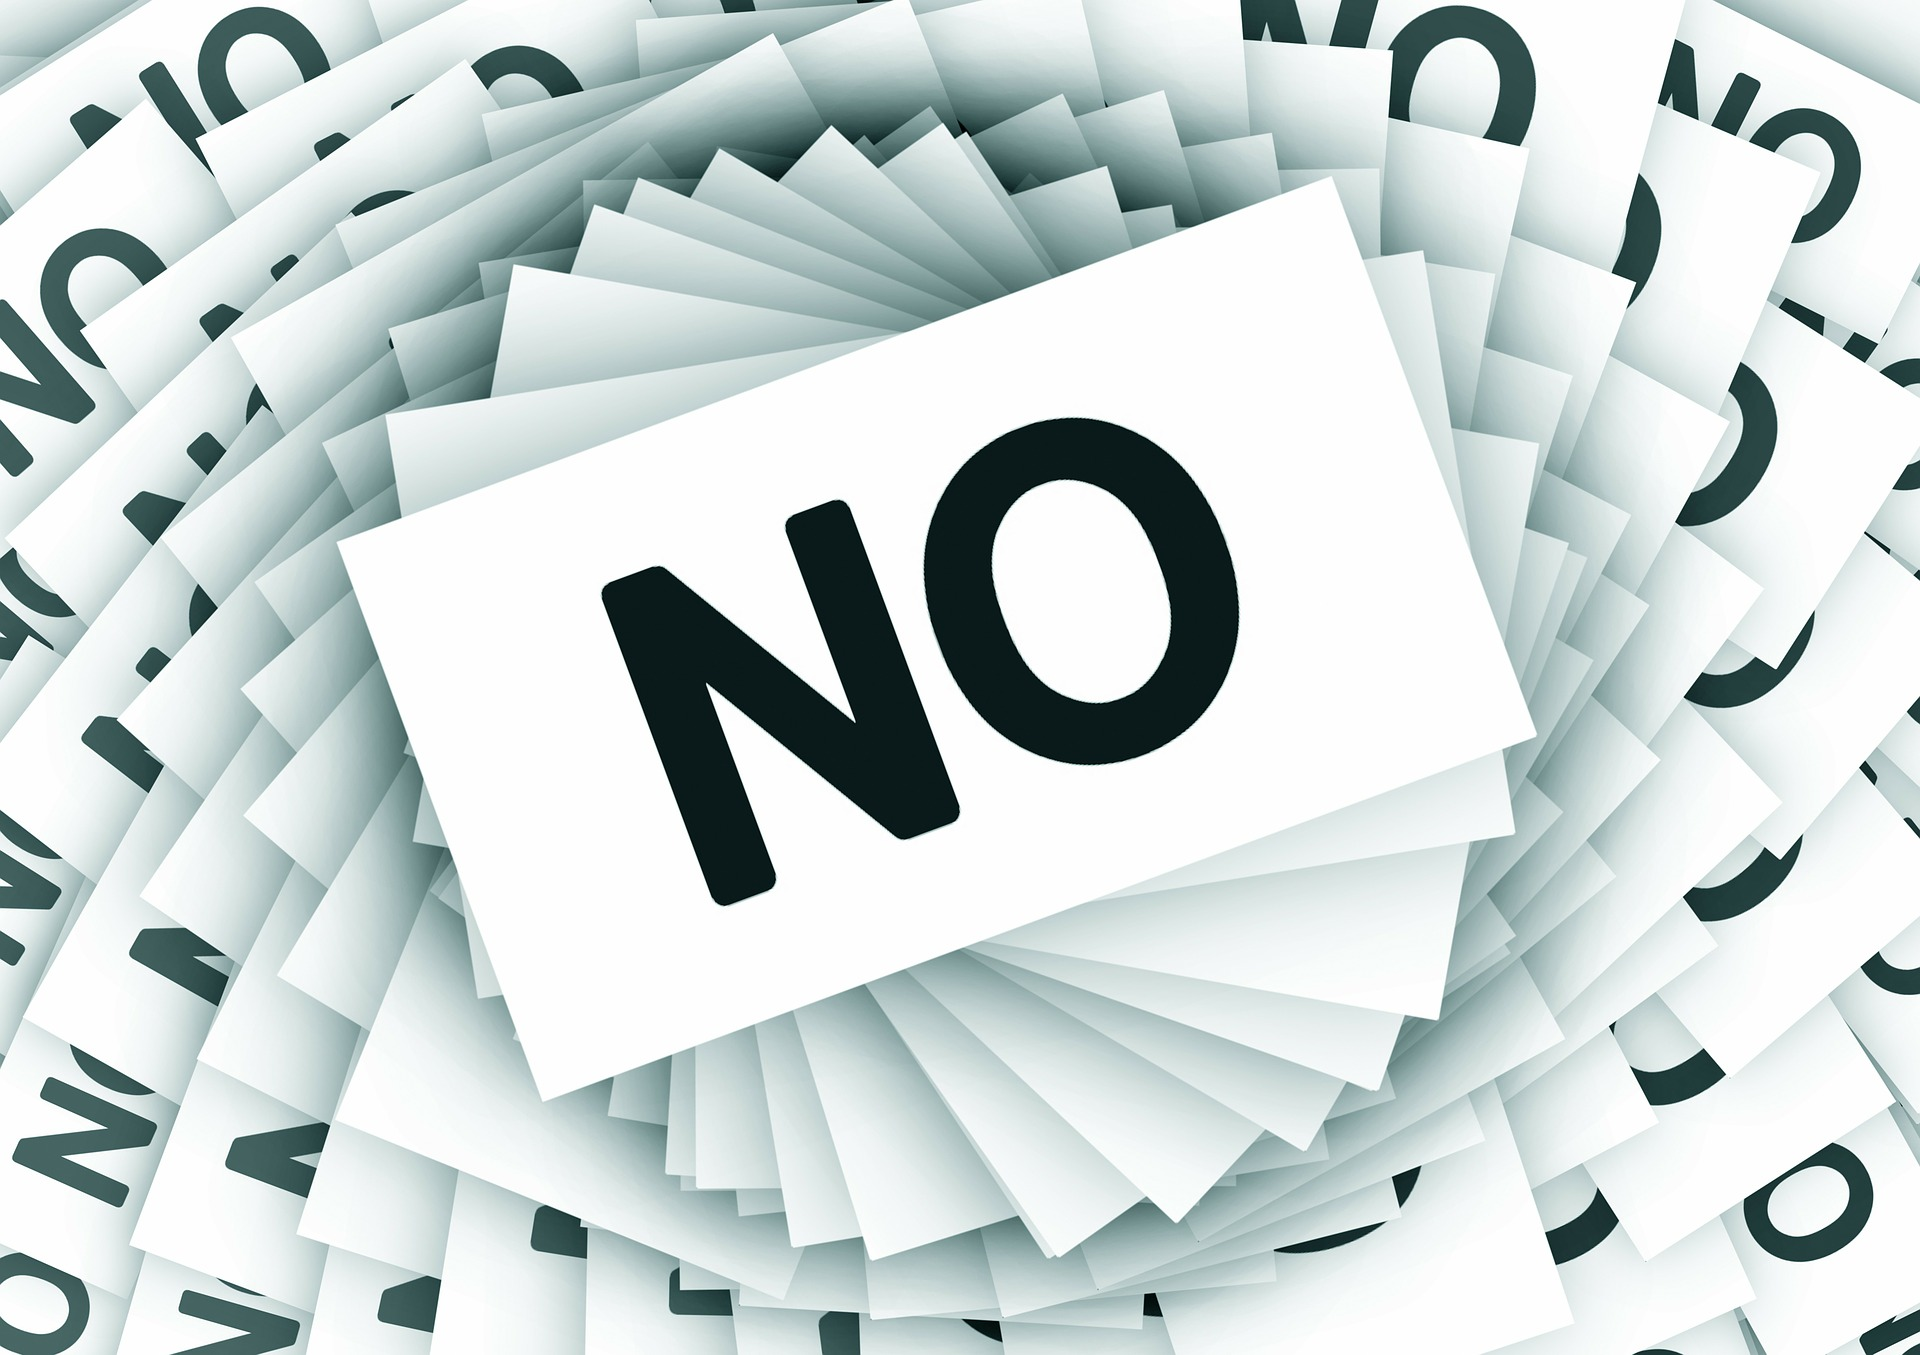 Always wondered what's so special about the word no? Always wanted to use it but you can't because you're afraid? Maybe you should give it a try?